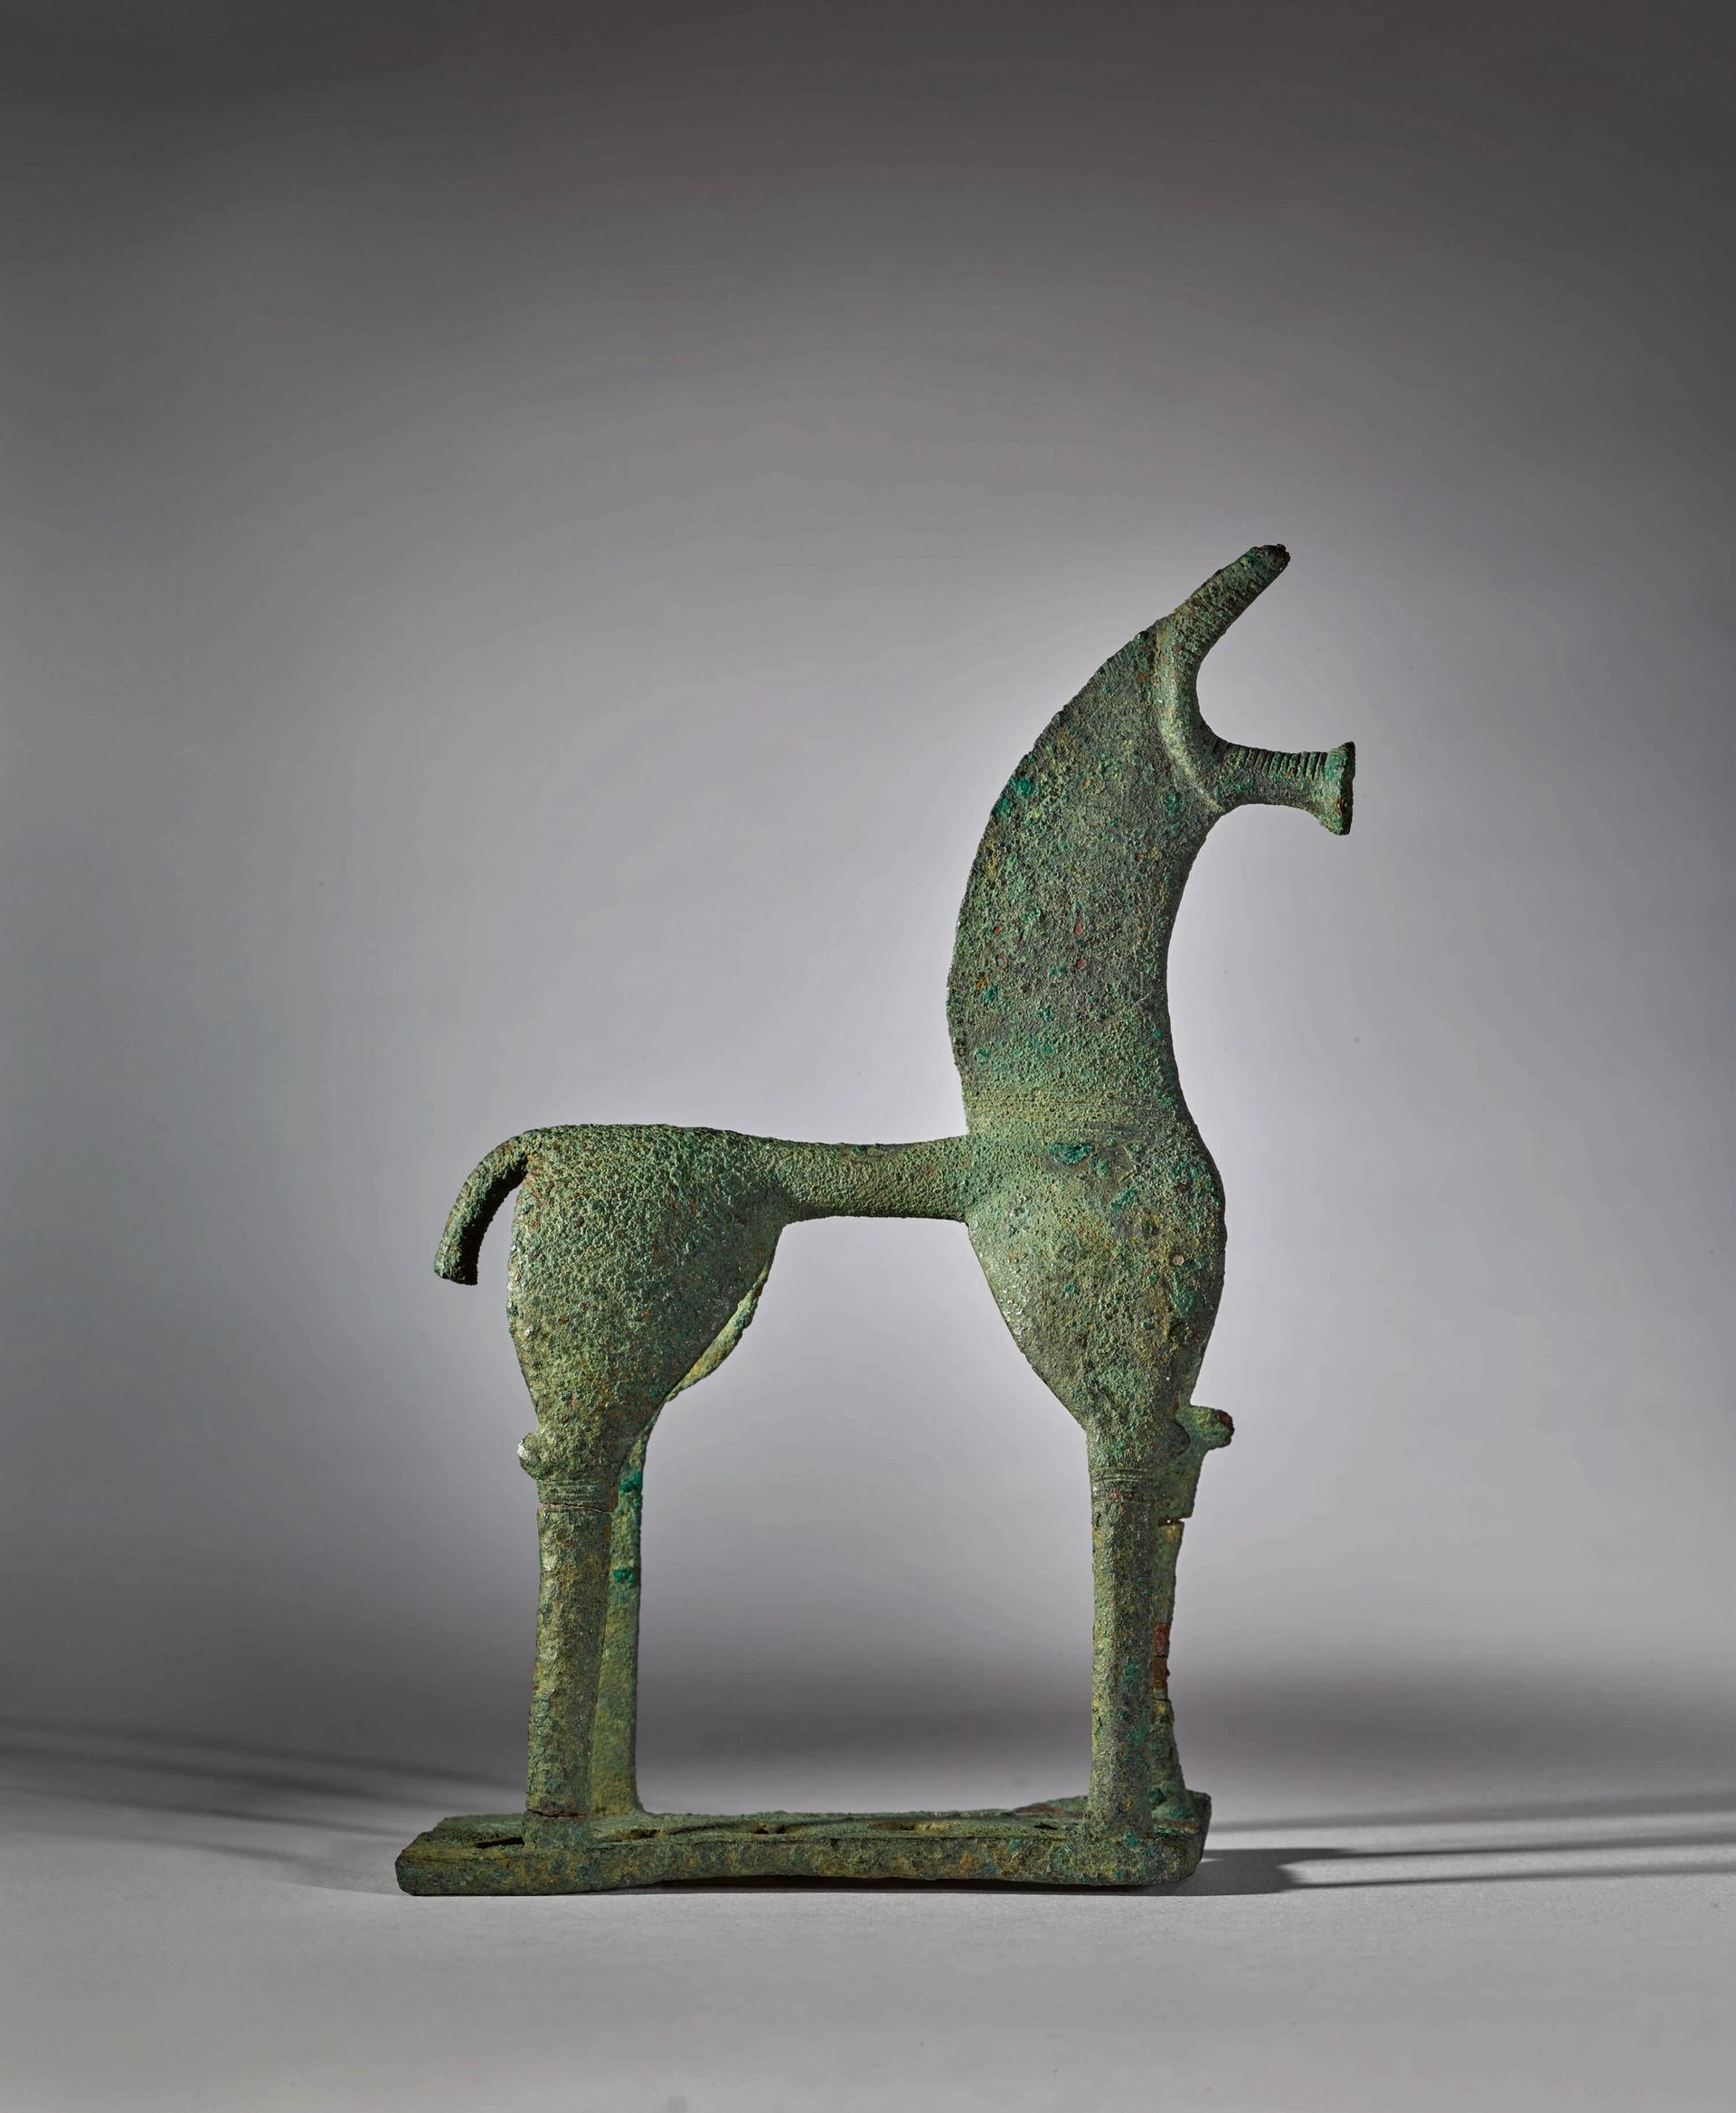 The ancient bronze horse was withdrawn from sale after Greece demanded its return, but now Sotheby's is fighting back Sotheby's